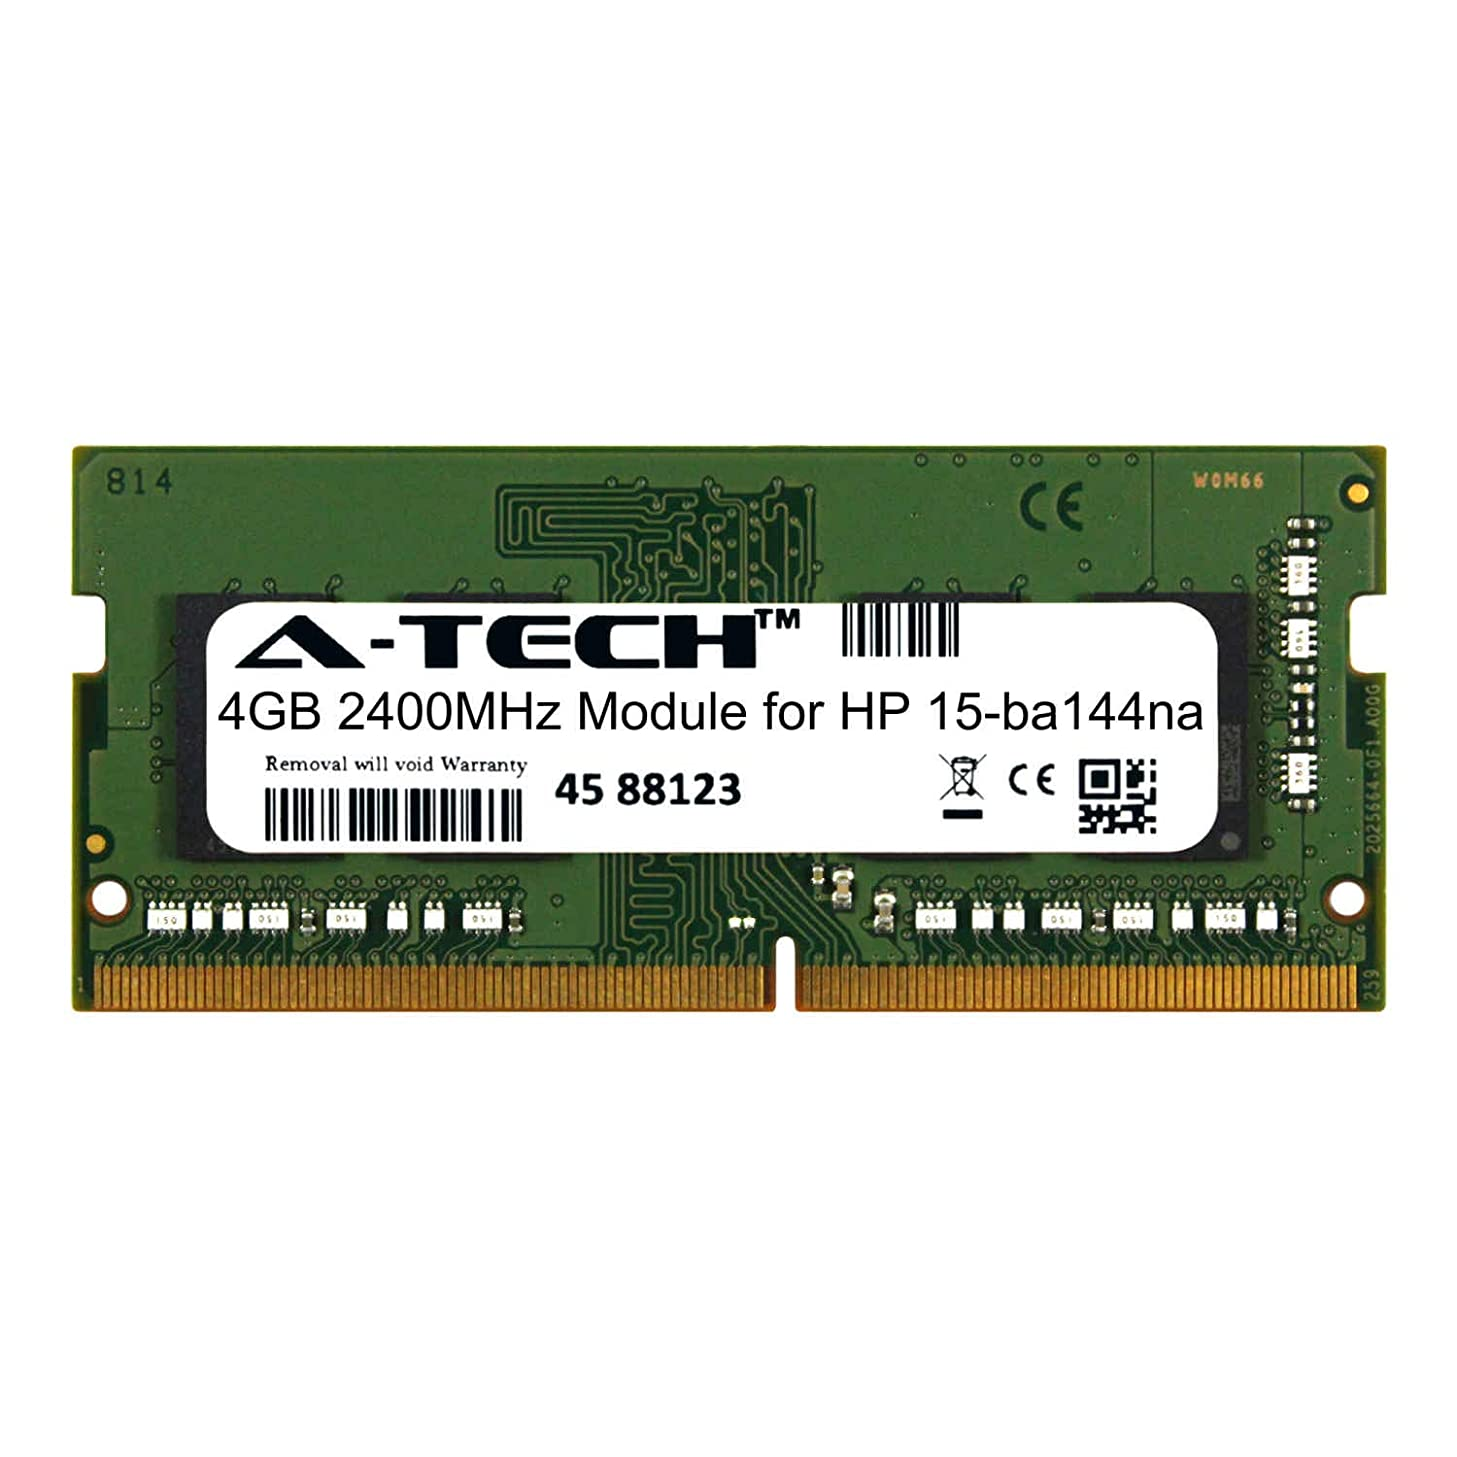 A-Tech 4GB Module for HP 15-ba144na Laptop & Notebook Compatible DDR4 2400Mhz Memory Ram (ATMS379900A25824X1)